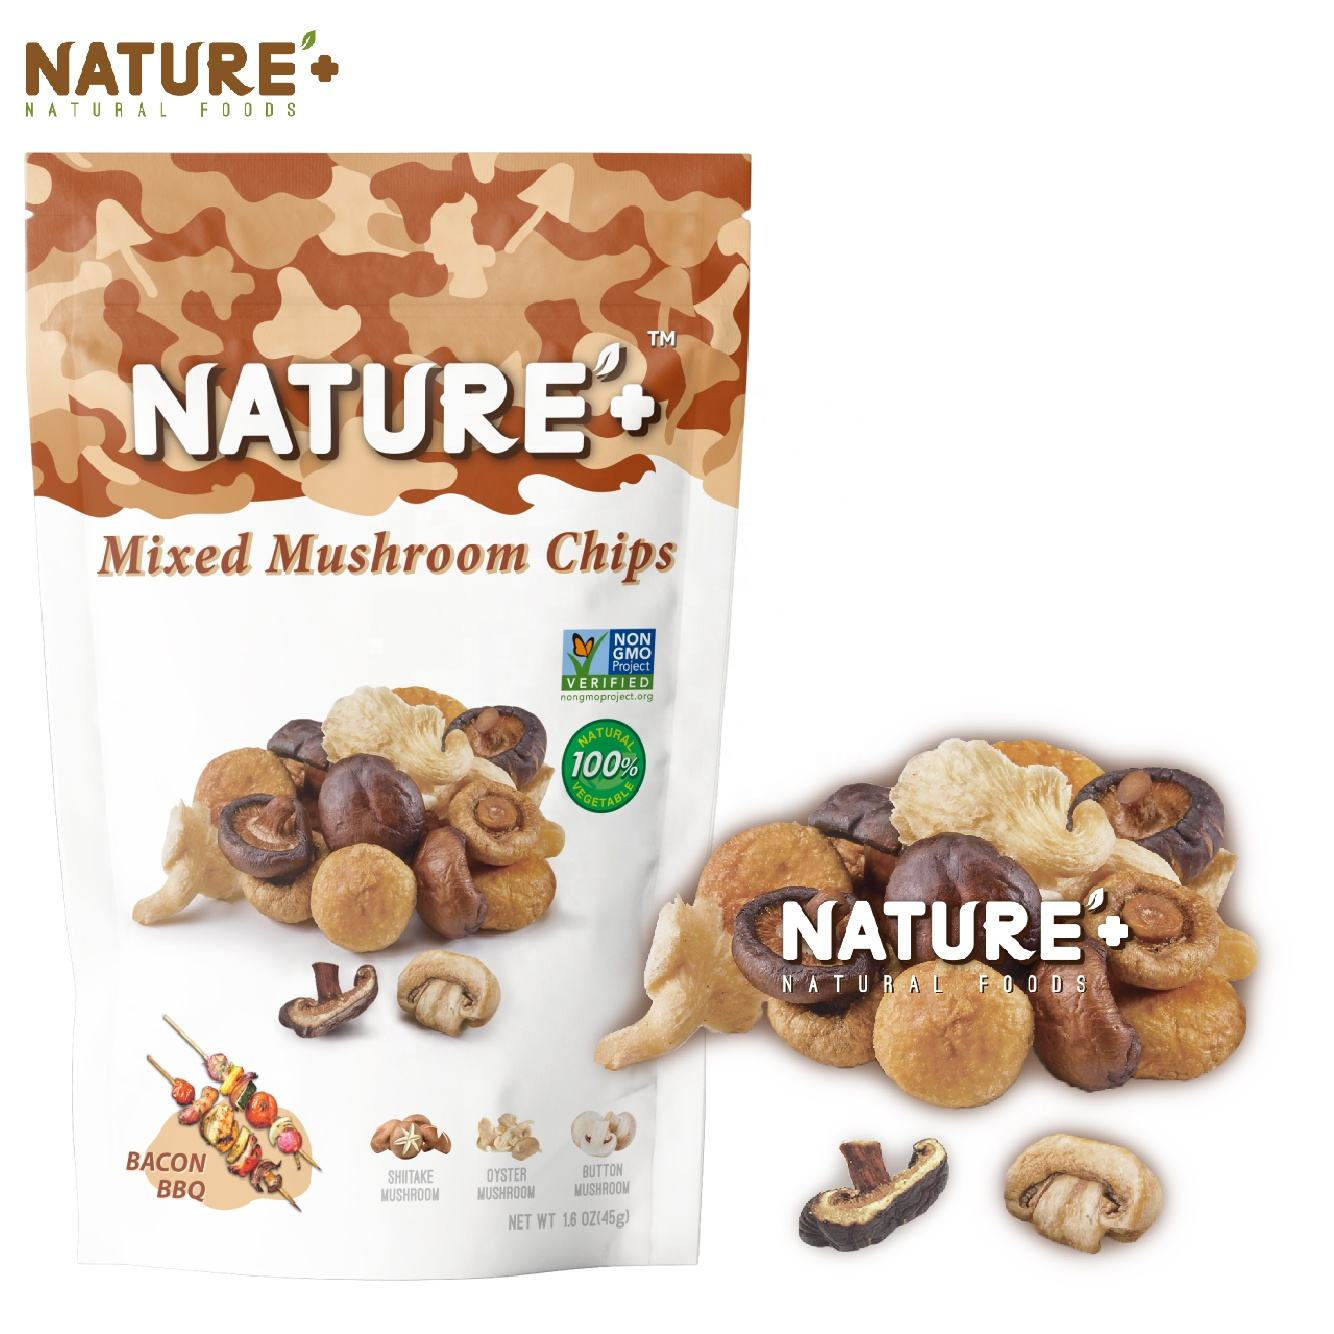 Mixed Mushroom Chips | Bacon BBQ | Private Label | Healthy Snacks | Sustainably | Direct from Farm | Vegan | No Preservatives